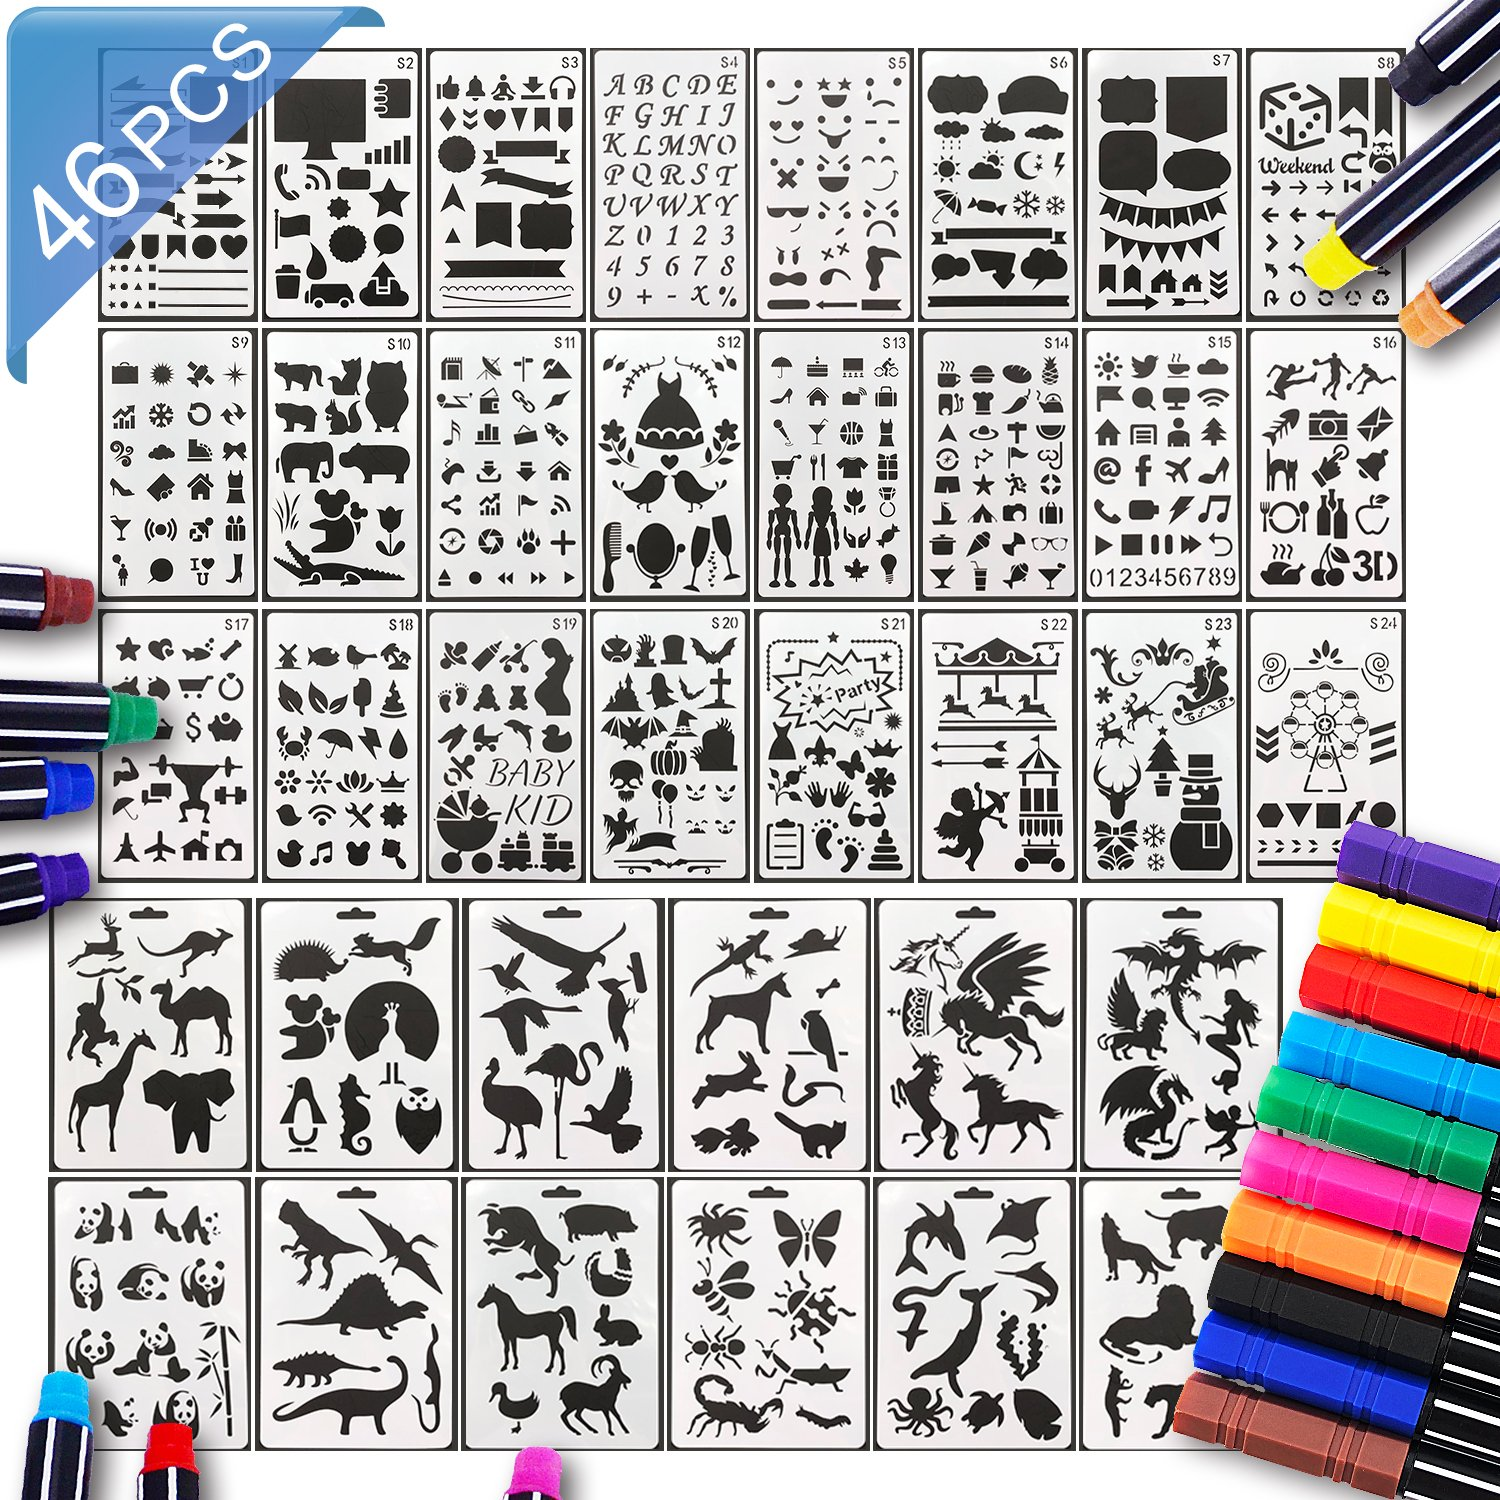 36PCS A5 Bullet Journal Stencils and 10 Colored Planner Pens-Plastic Planner Template for Notebook, Diary, Scrapbooks, Drawing, DIY Painting Craft